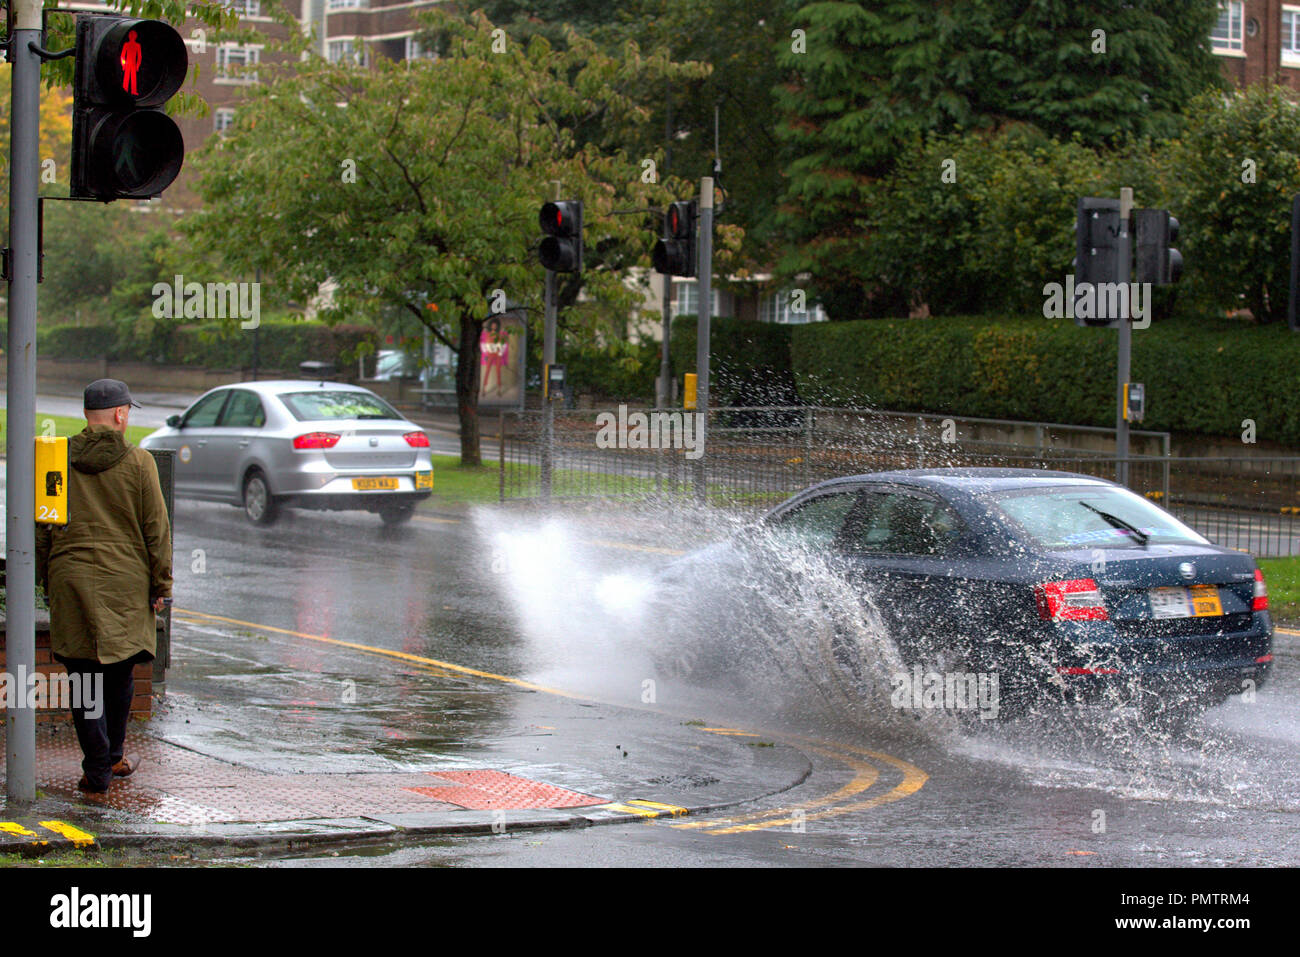 Glasgow Scotland UK 19th September 2018 Weather Storm Ali Appeared In The City Overnight Bringing Wind And Rain With An Amber Be Prepared Warning